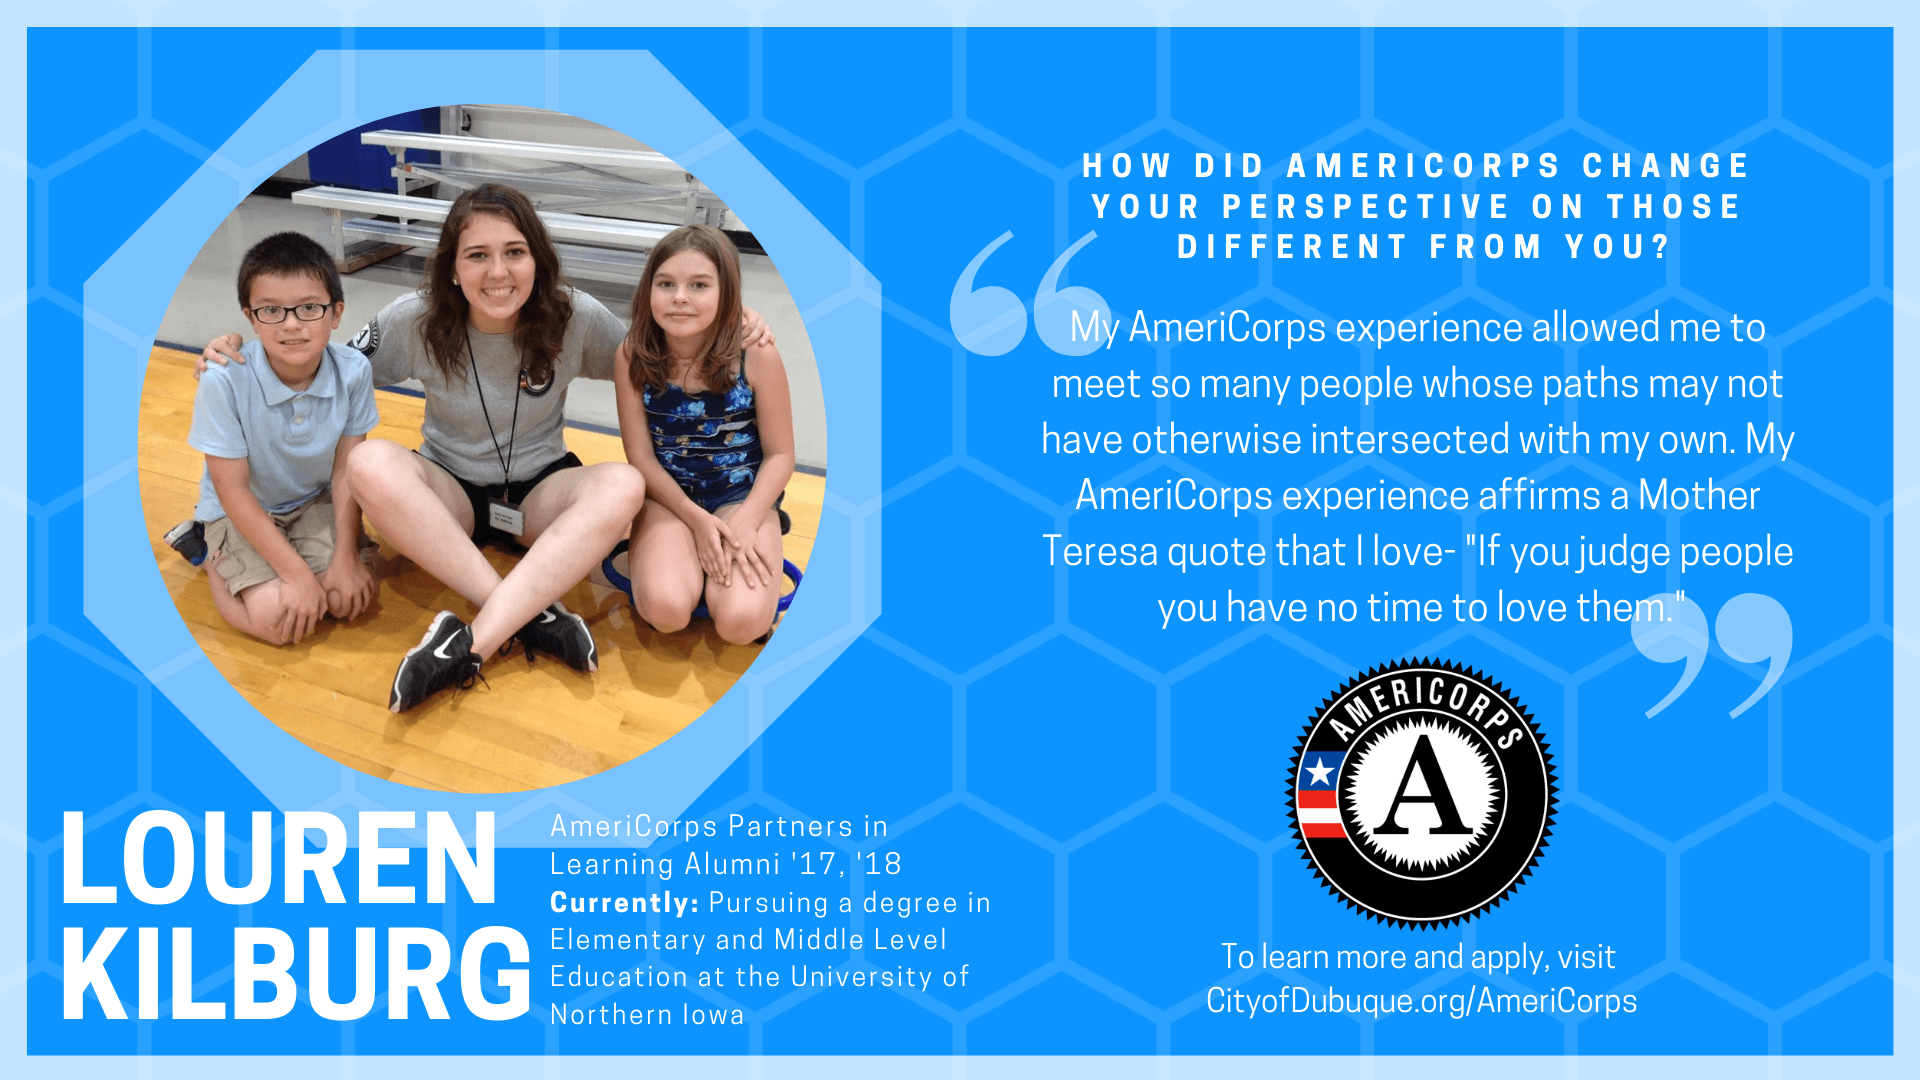 My AmeriCorps experience allowed me to meet so many people whose paths may not have otherwise inters